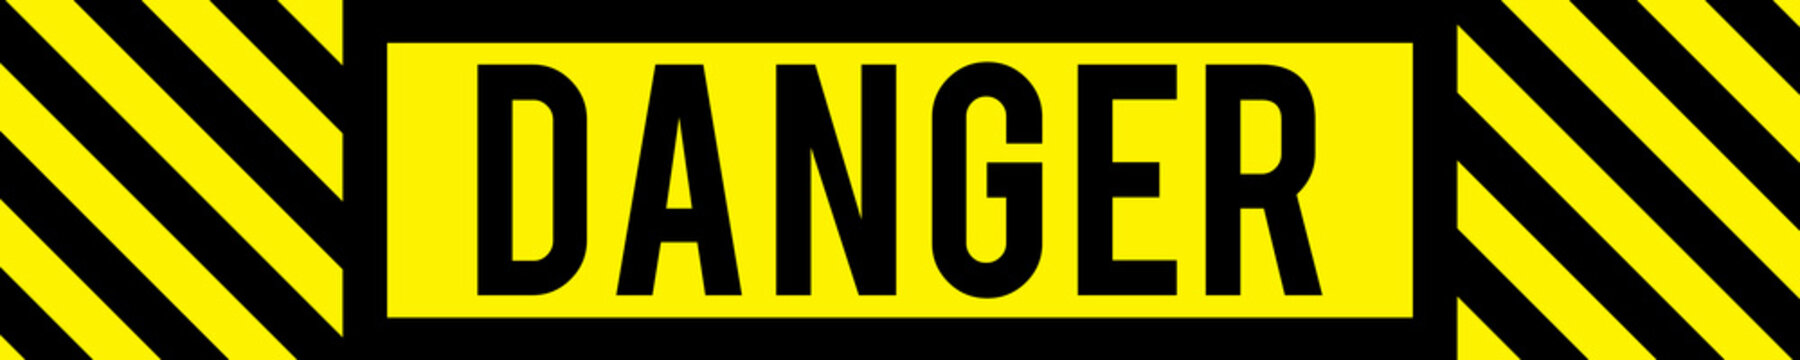 A bold black and yellow graphic text illustration danger banner for health and safety on roads, construction sites or other environments